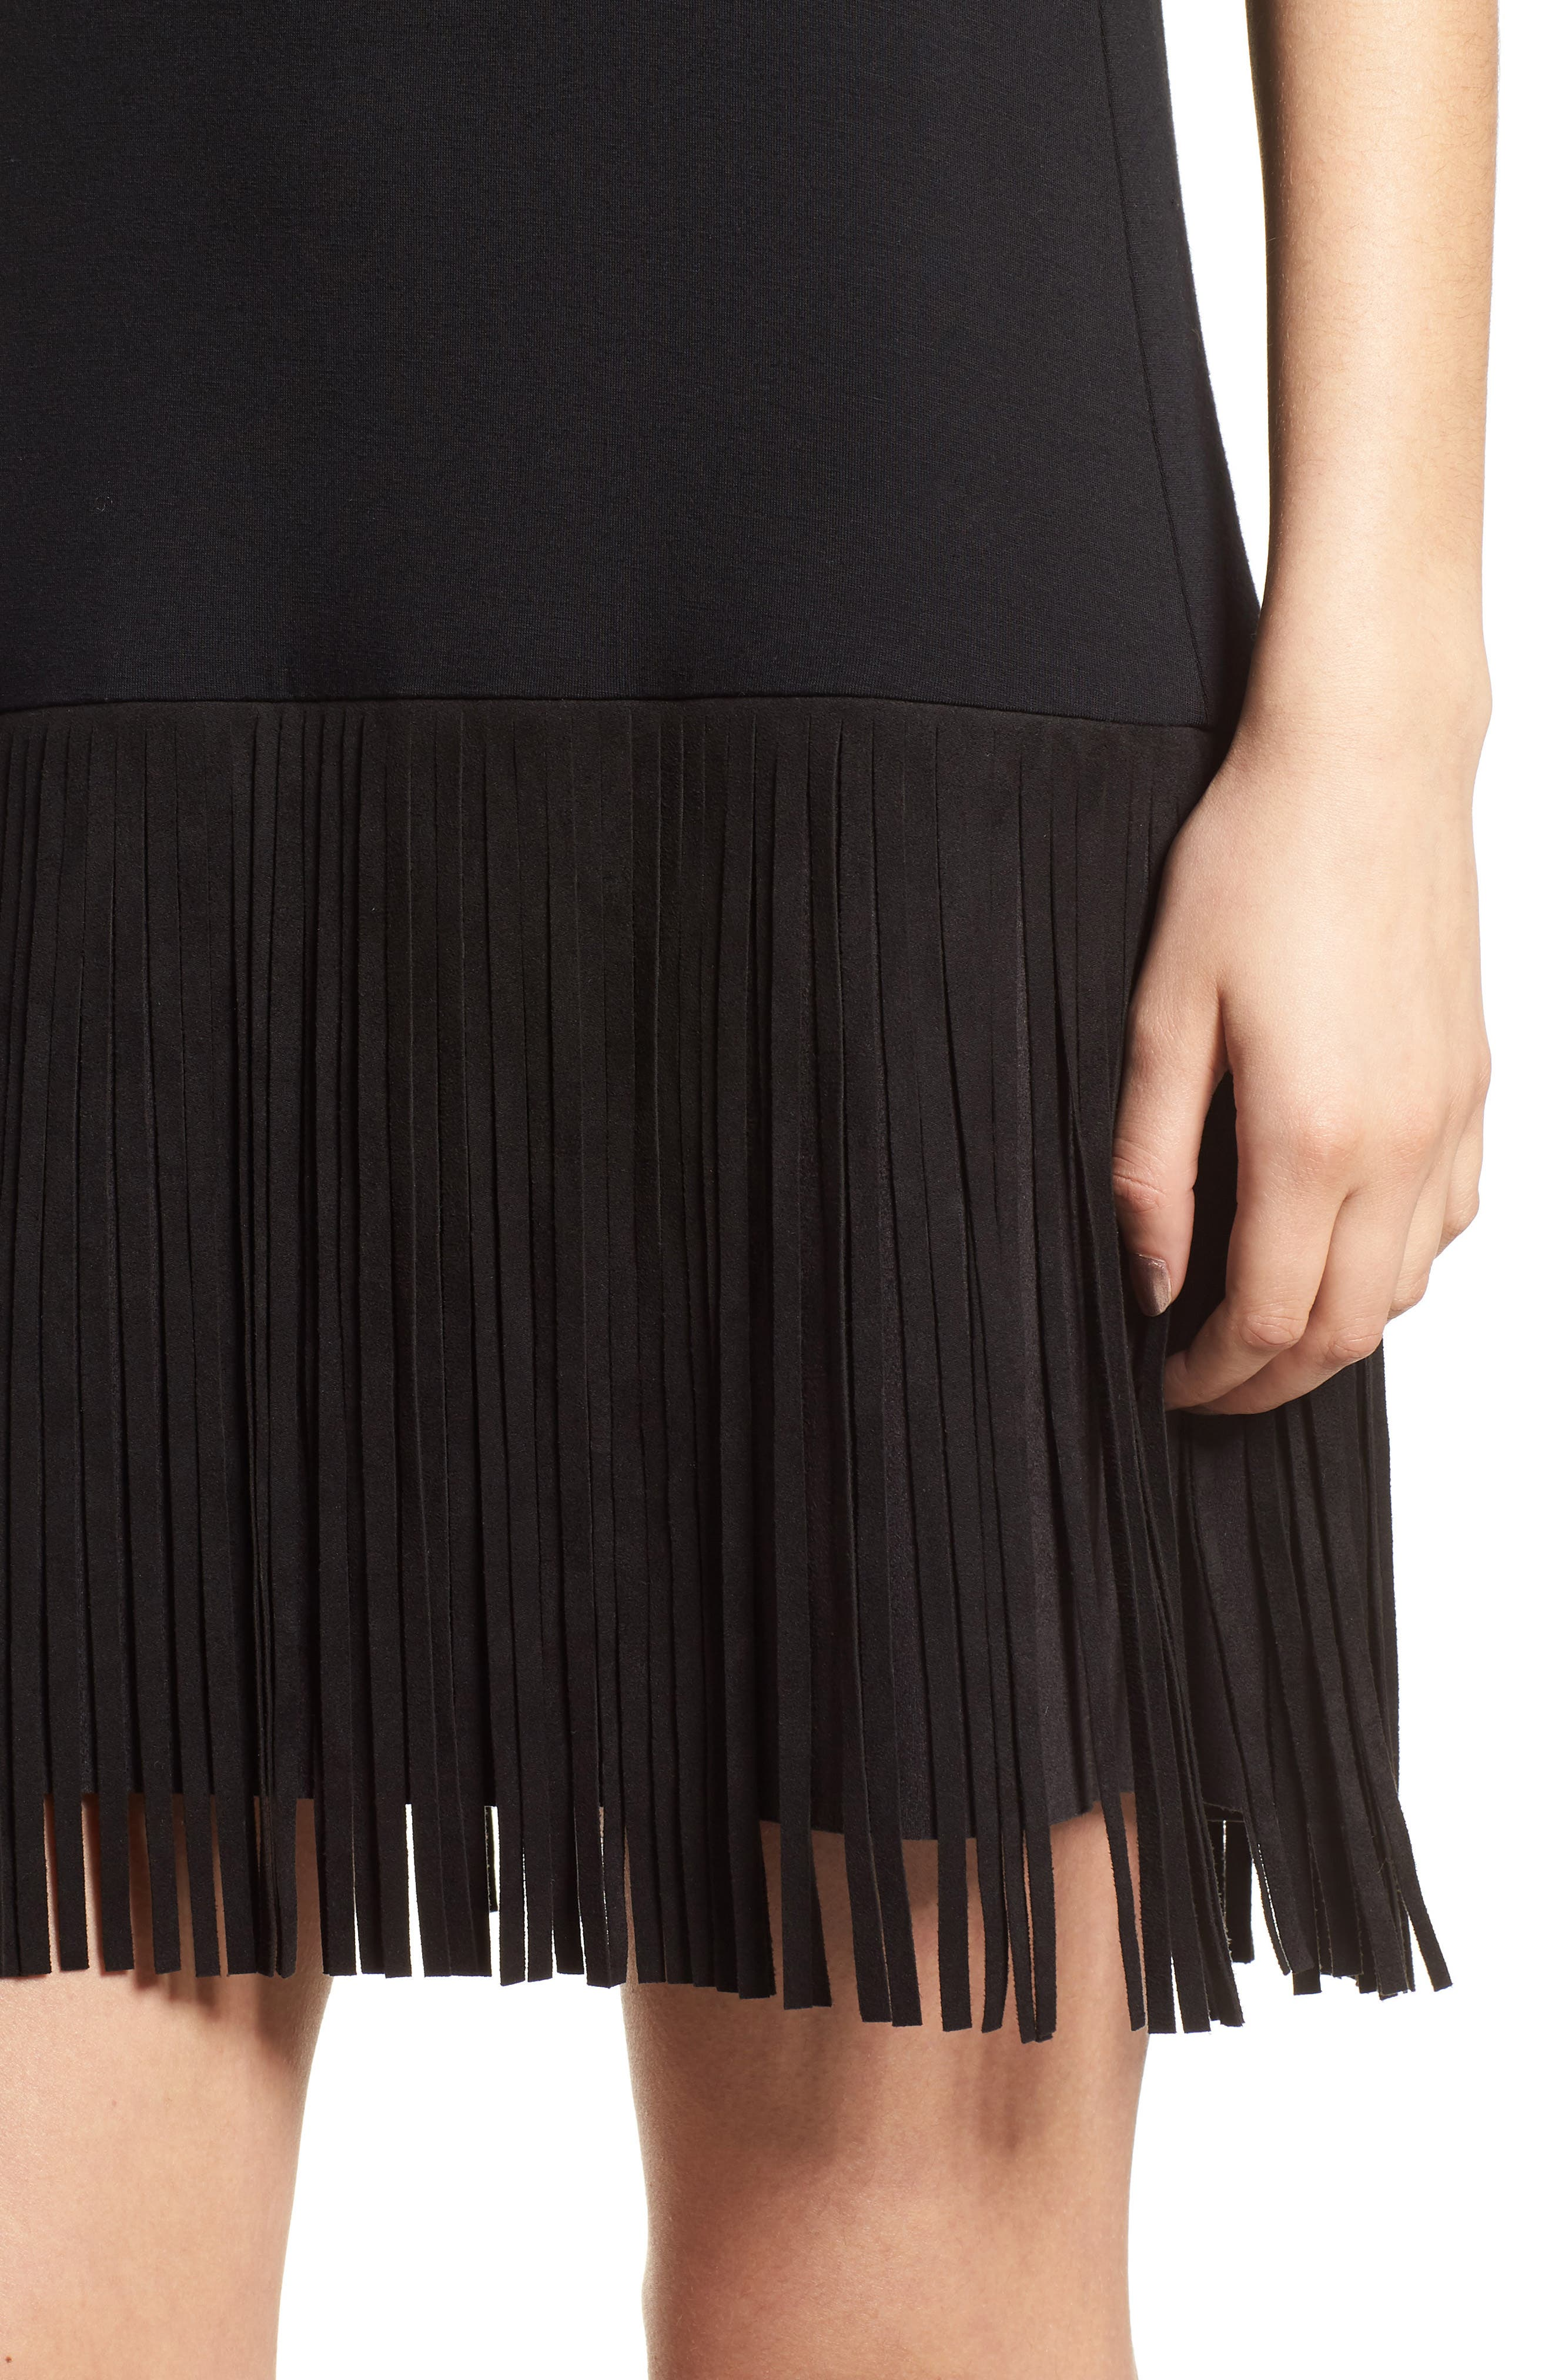 Dead or Alive Fringe Tank Dress,                             Alternate thumbnail 4, color,                             Black